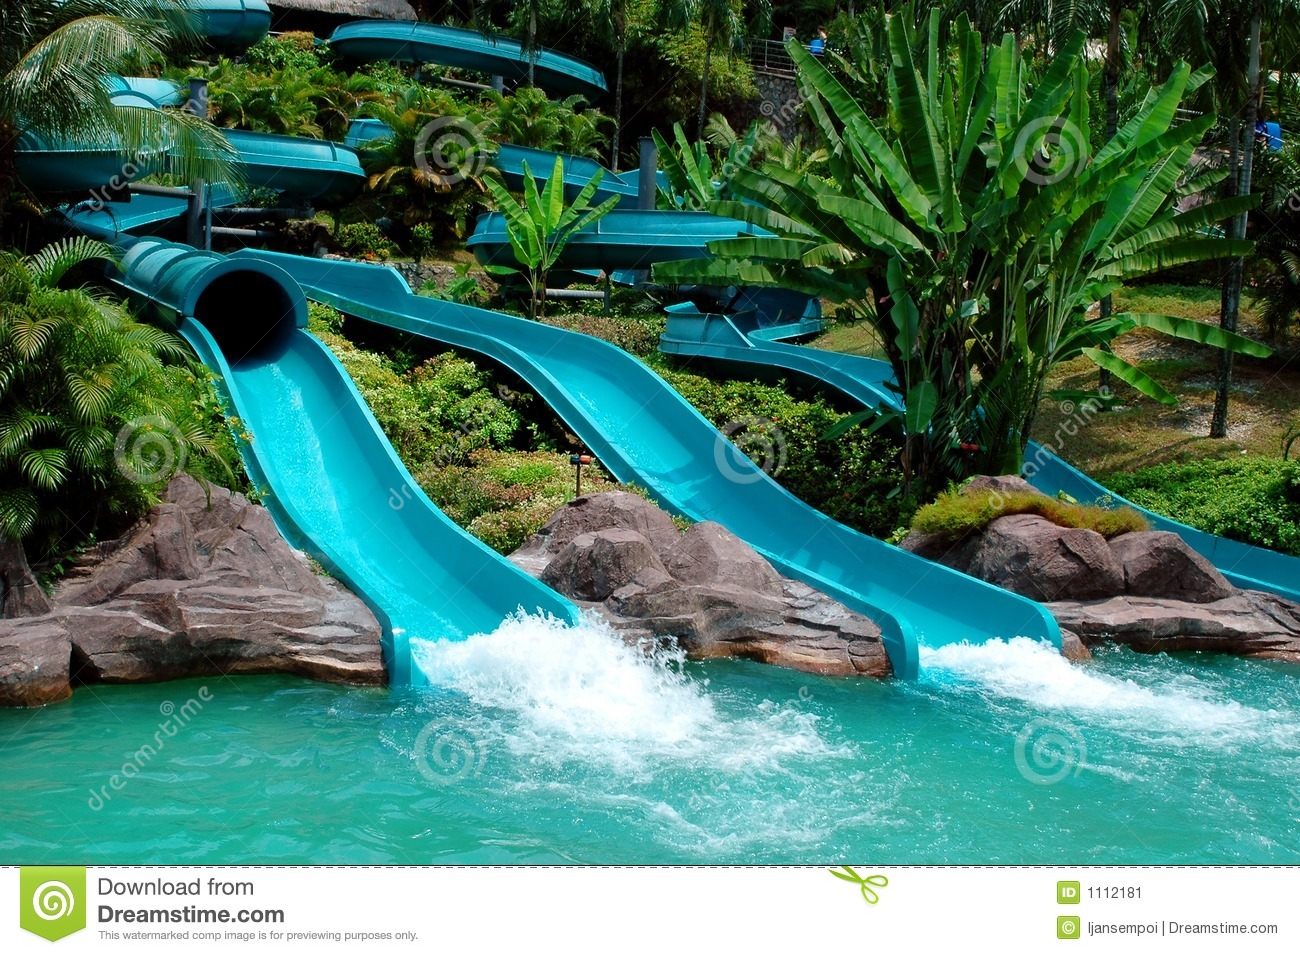 Water Slide Stock Image - Image: 1112181